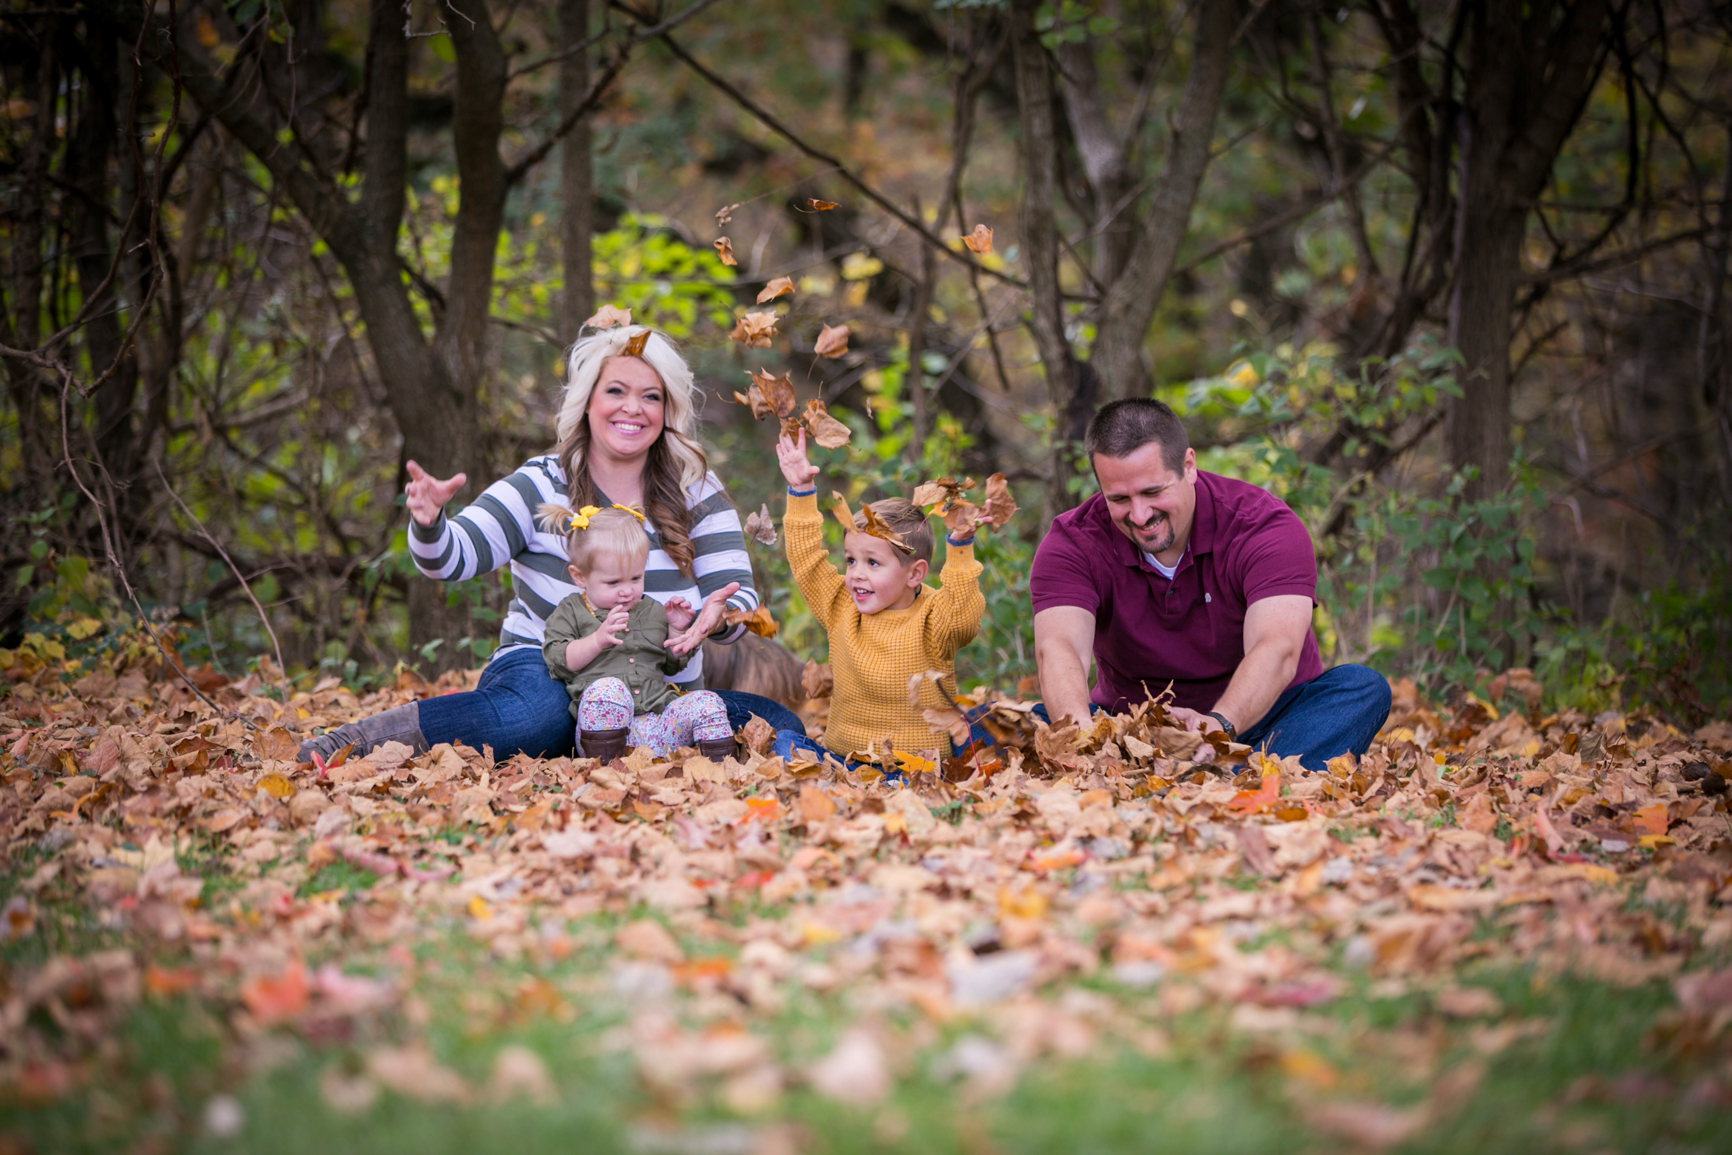 lifetime client - I have used Maggie for years to capture our family photos! Maggie did photos for our Christmas Cards, for our maternity pictures, for our children's monthly photos during their first year and then photos of our family too. Maggie has always been prompt and professional and delivered photos we love... Even when things 'don't go just right' with your little ones...she captures photos that make it look like it did!! We plan to continue to recommend and use Maggie for future shoots! She has always let me use my creative ideas to create the photos I really want!